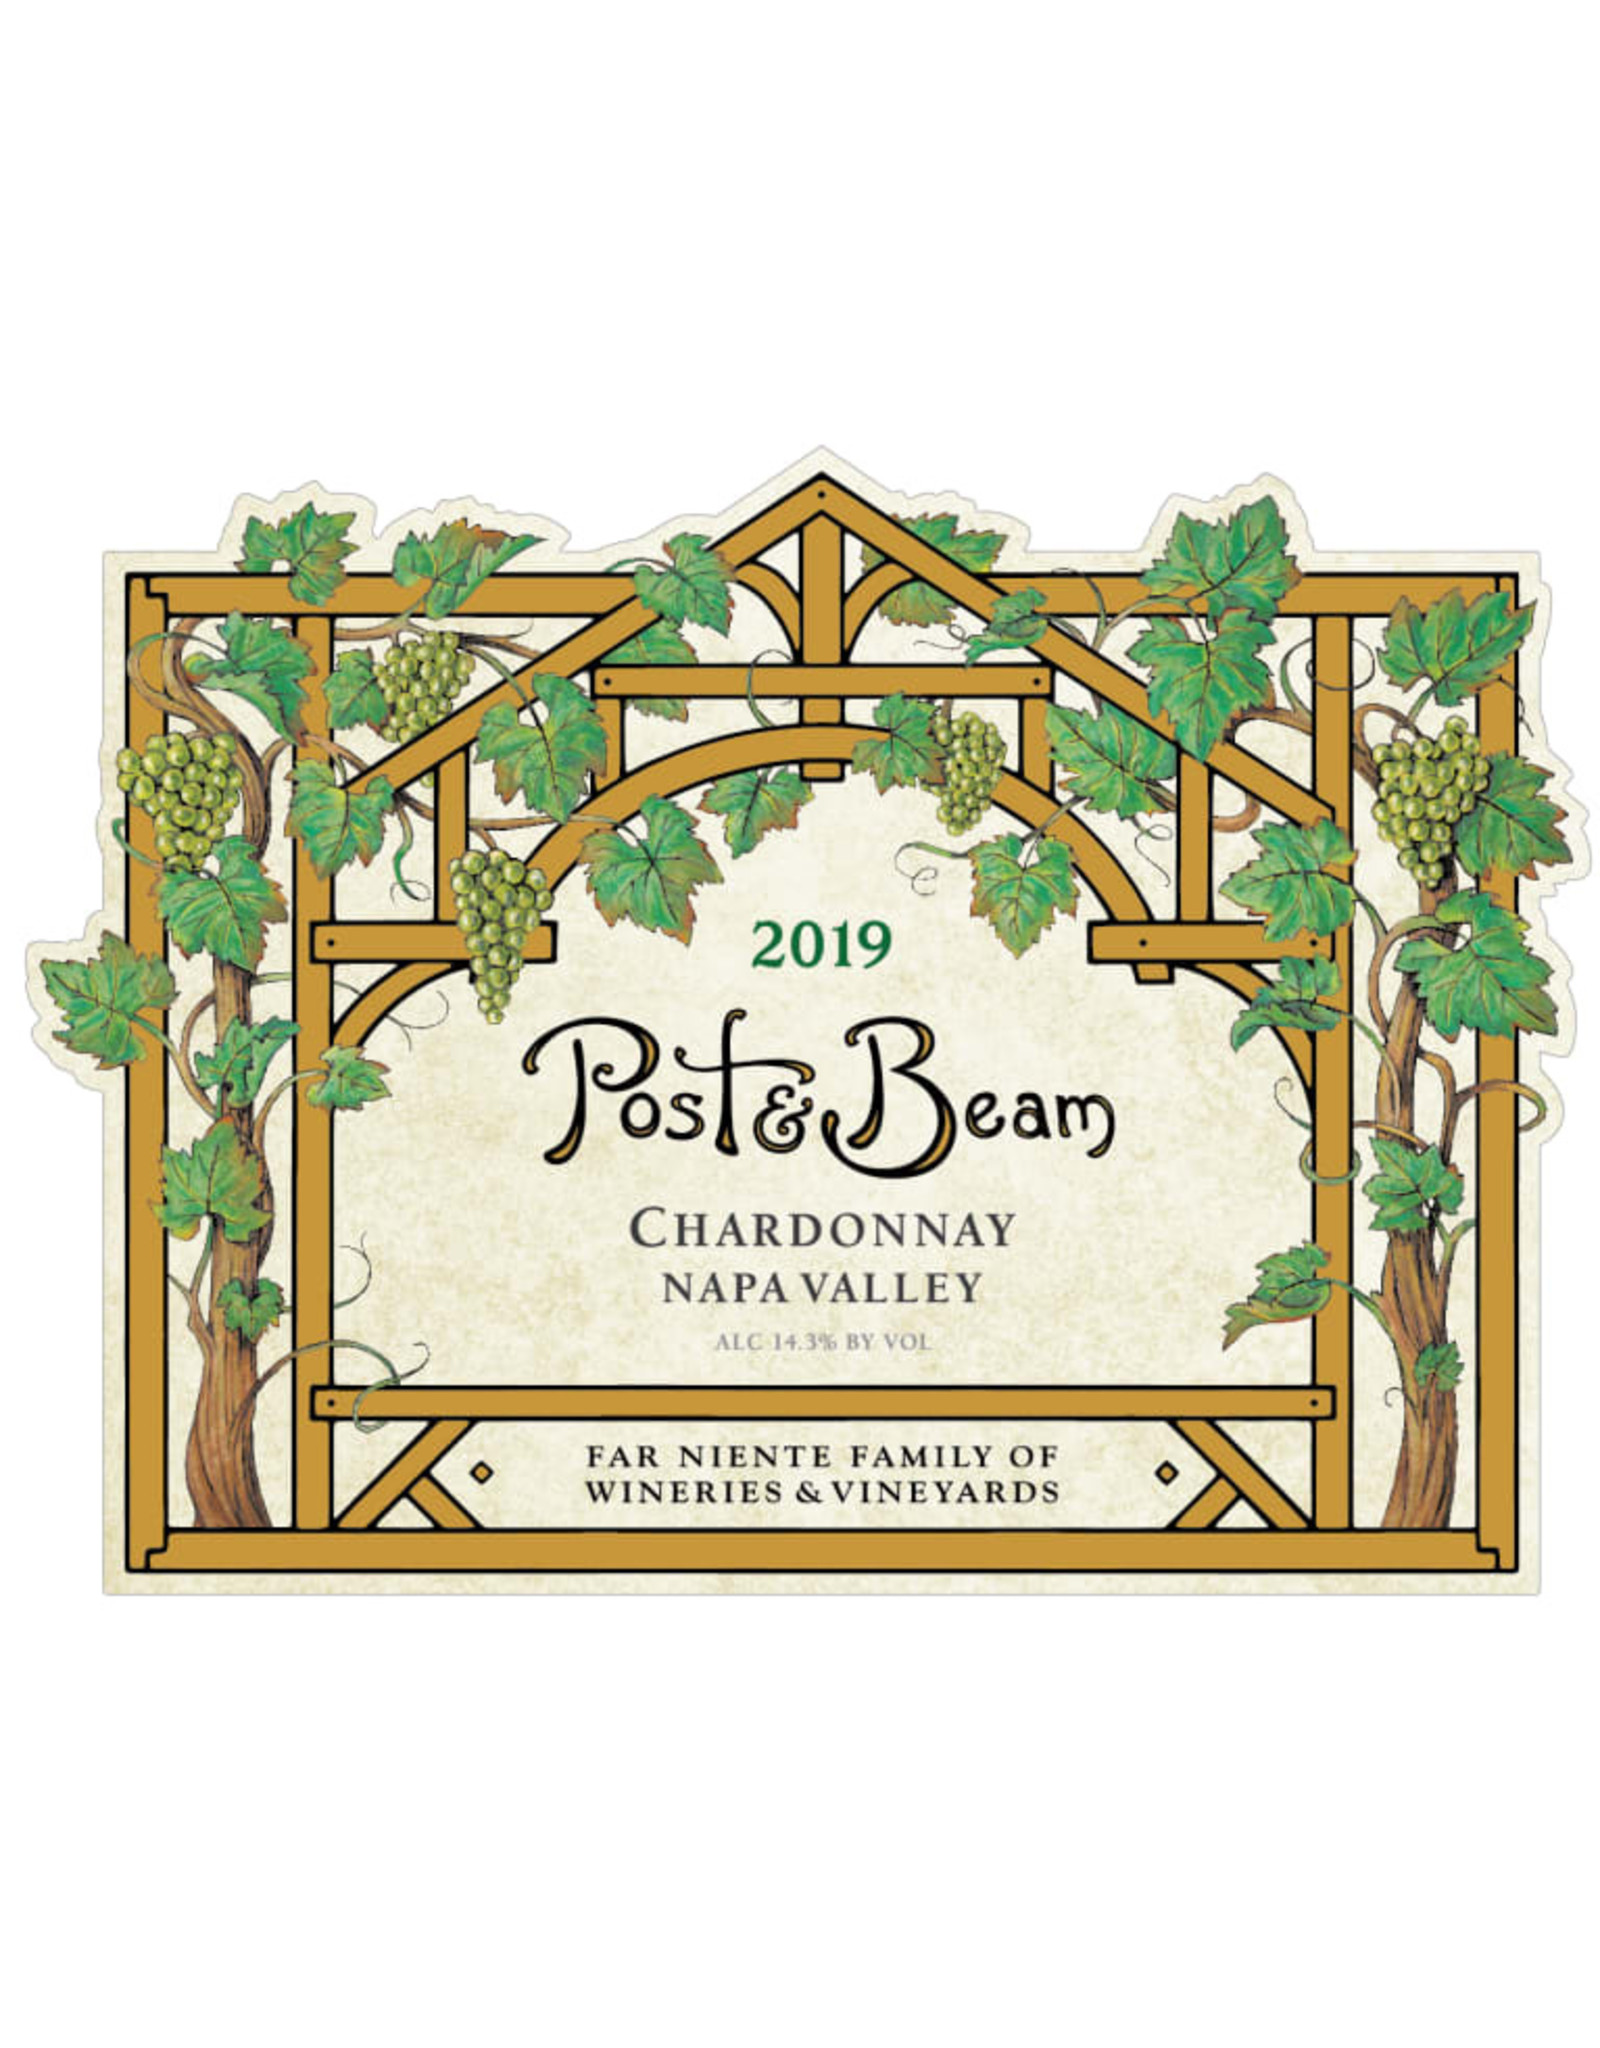 POST & BEAM CHARDONNAY 2019